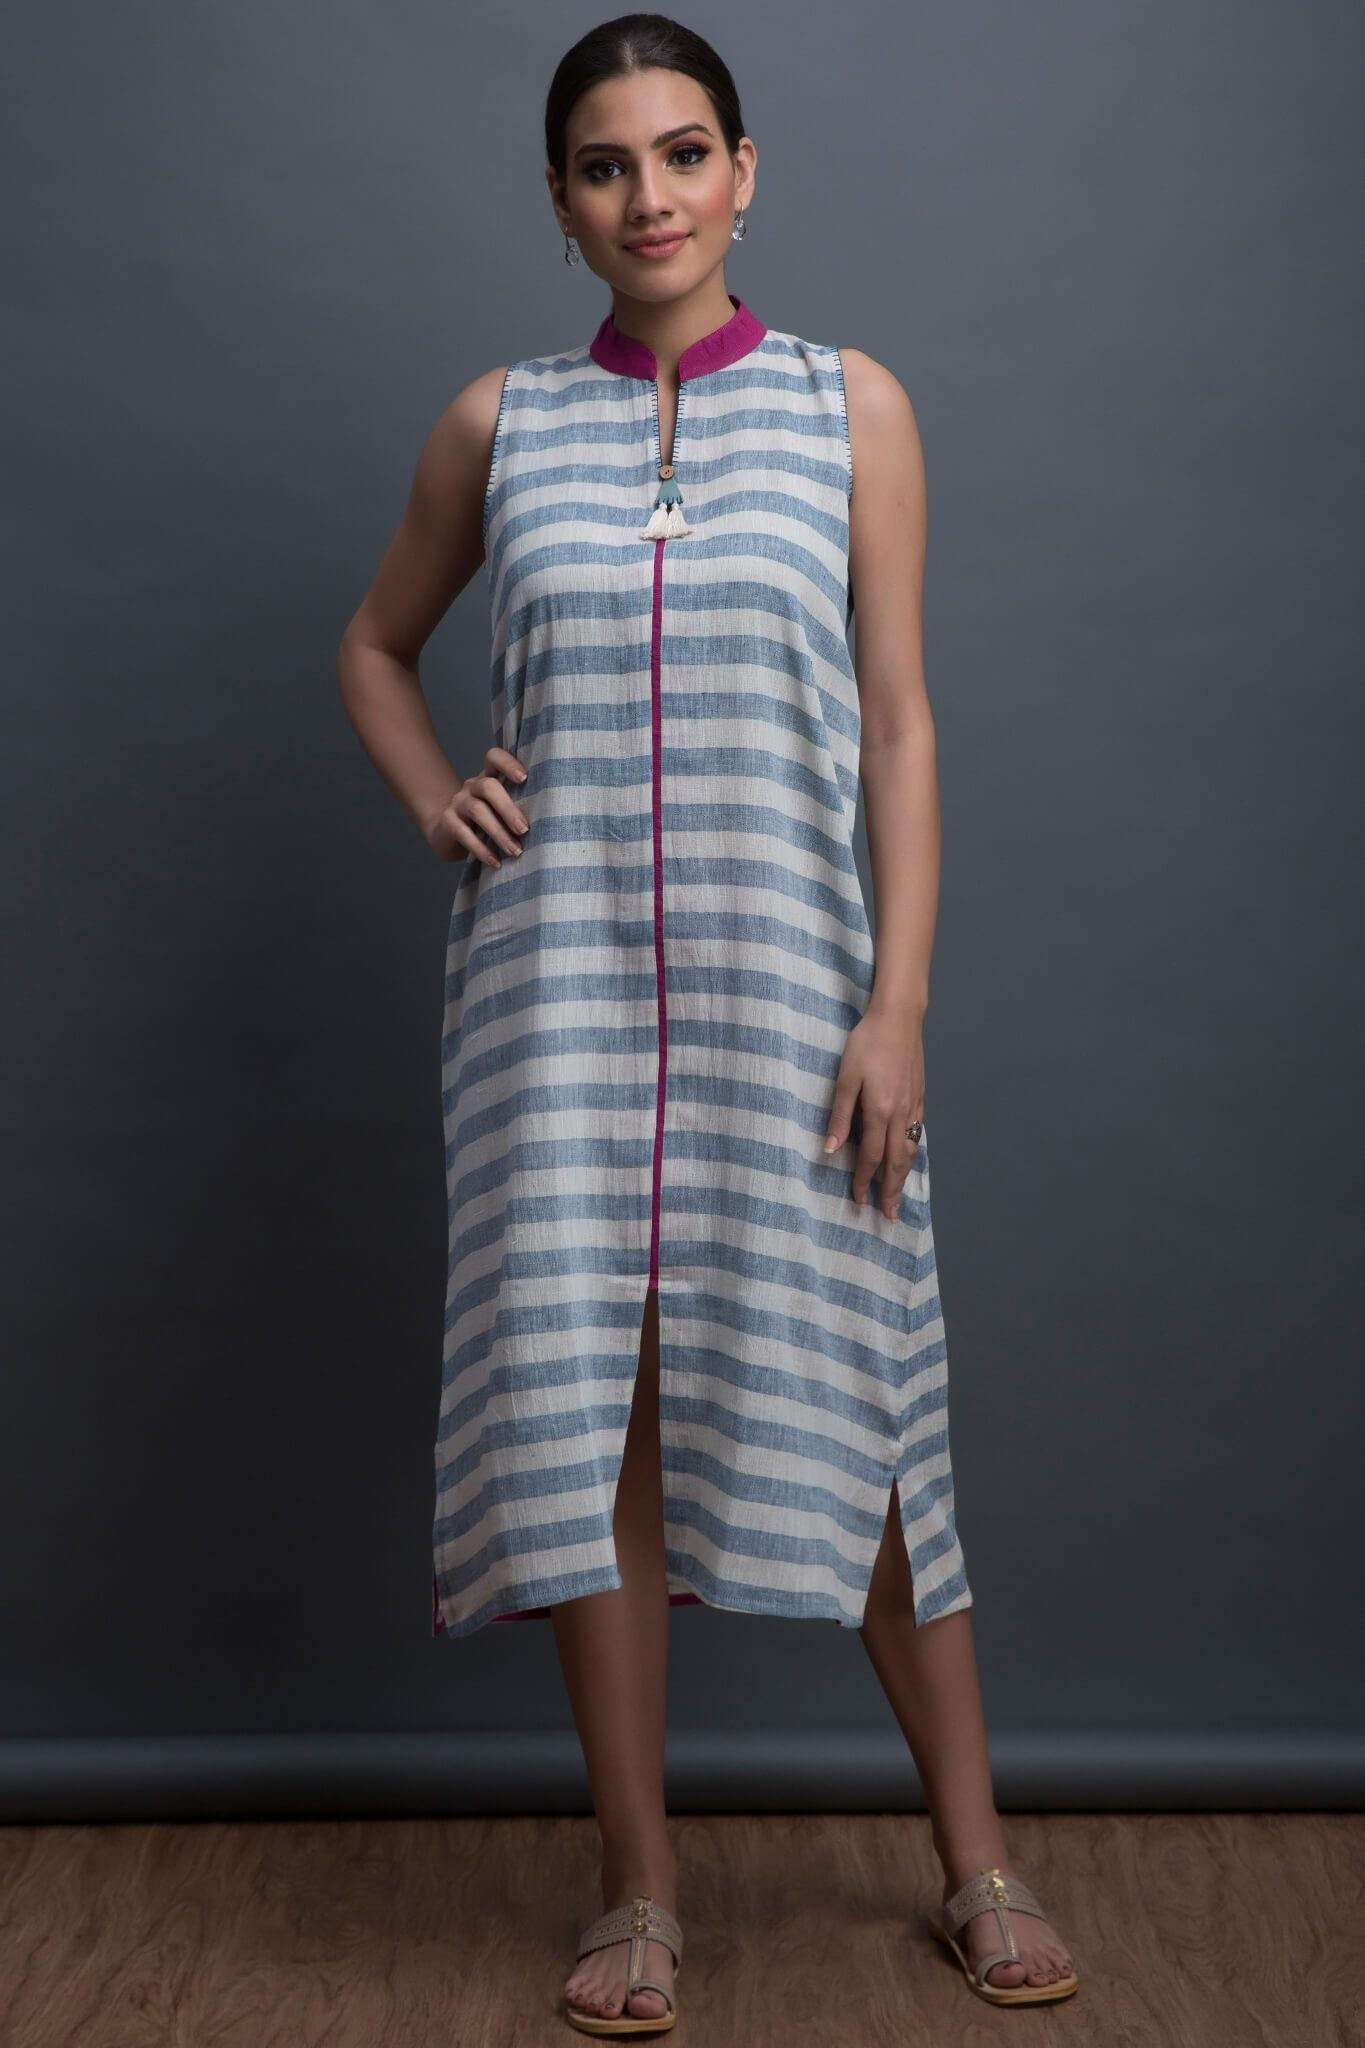 dress - indigo & stripes